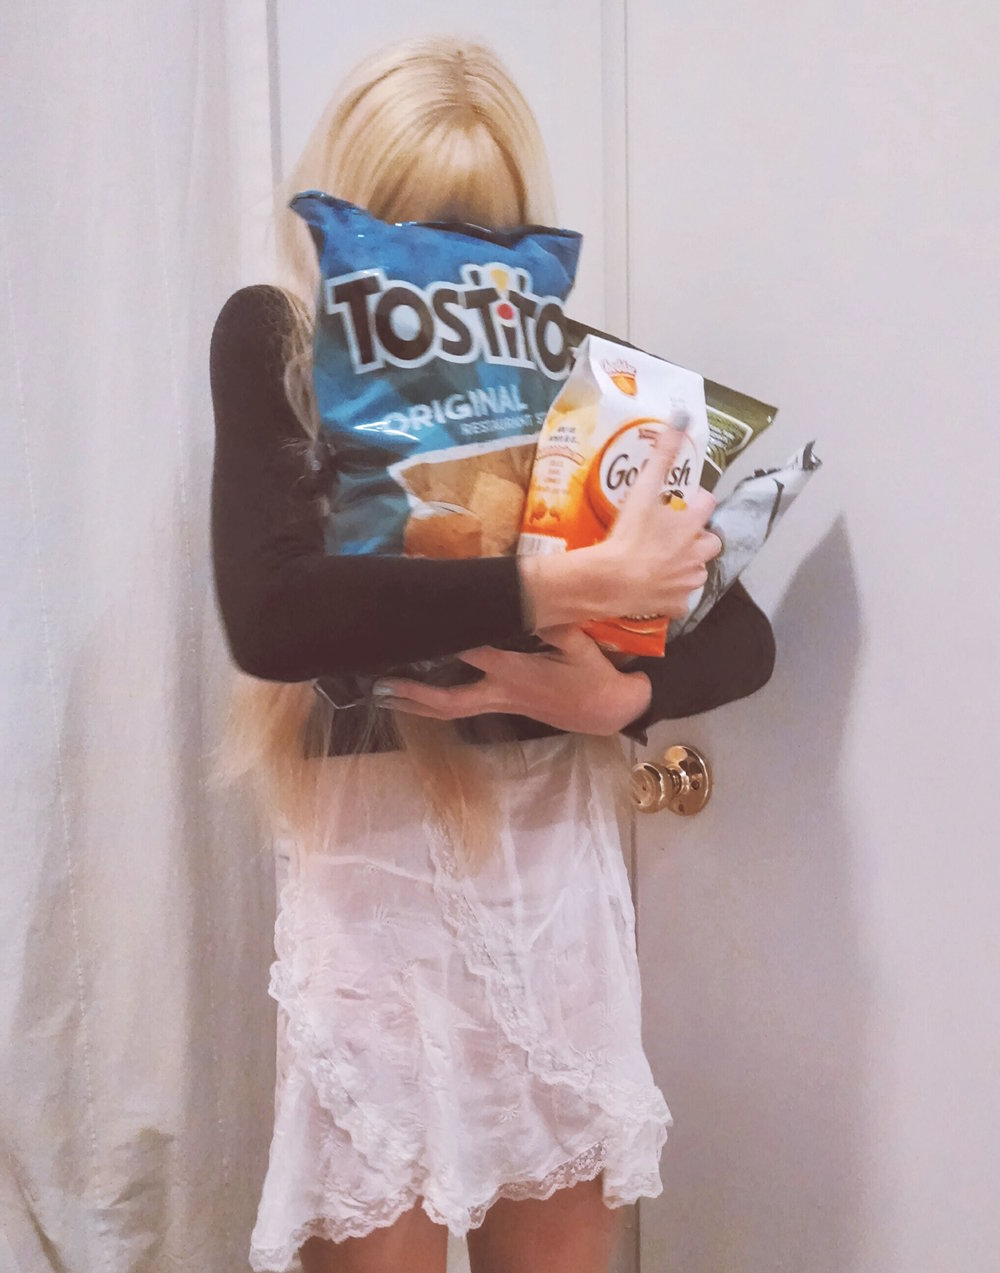 Me in 2013 with tostitos, Goldfish, and two bags of potato chips